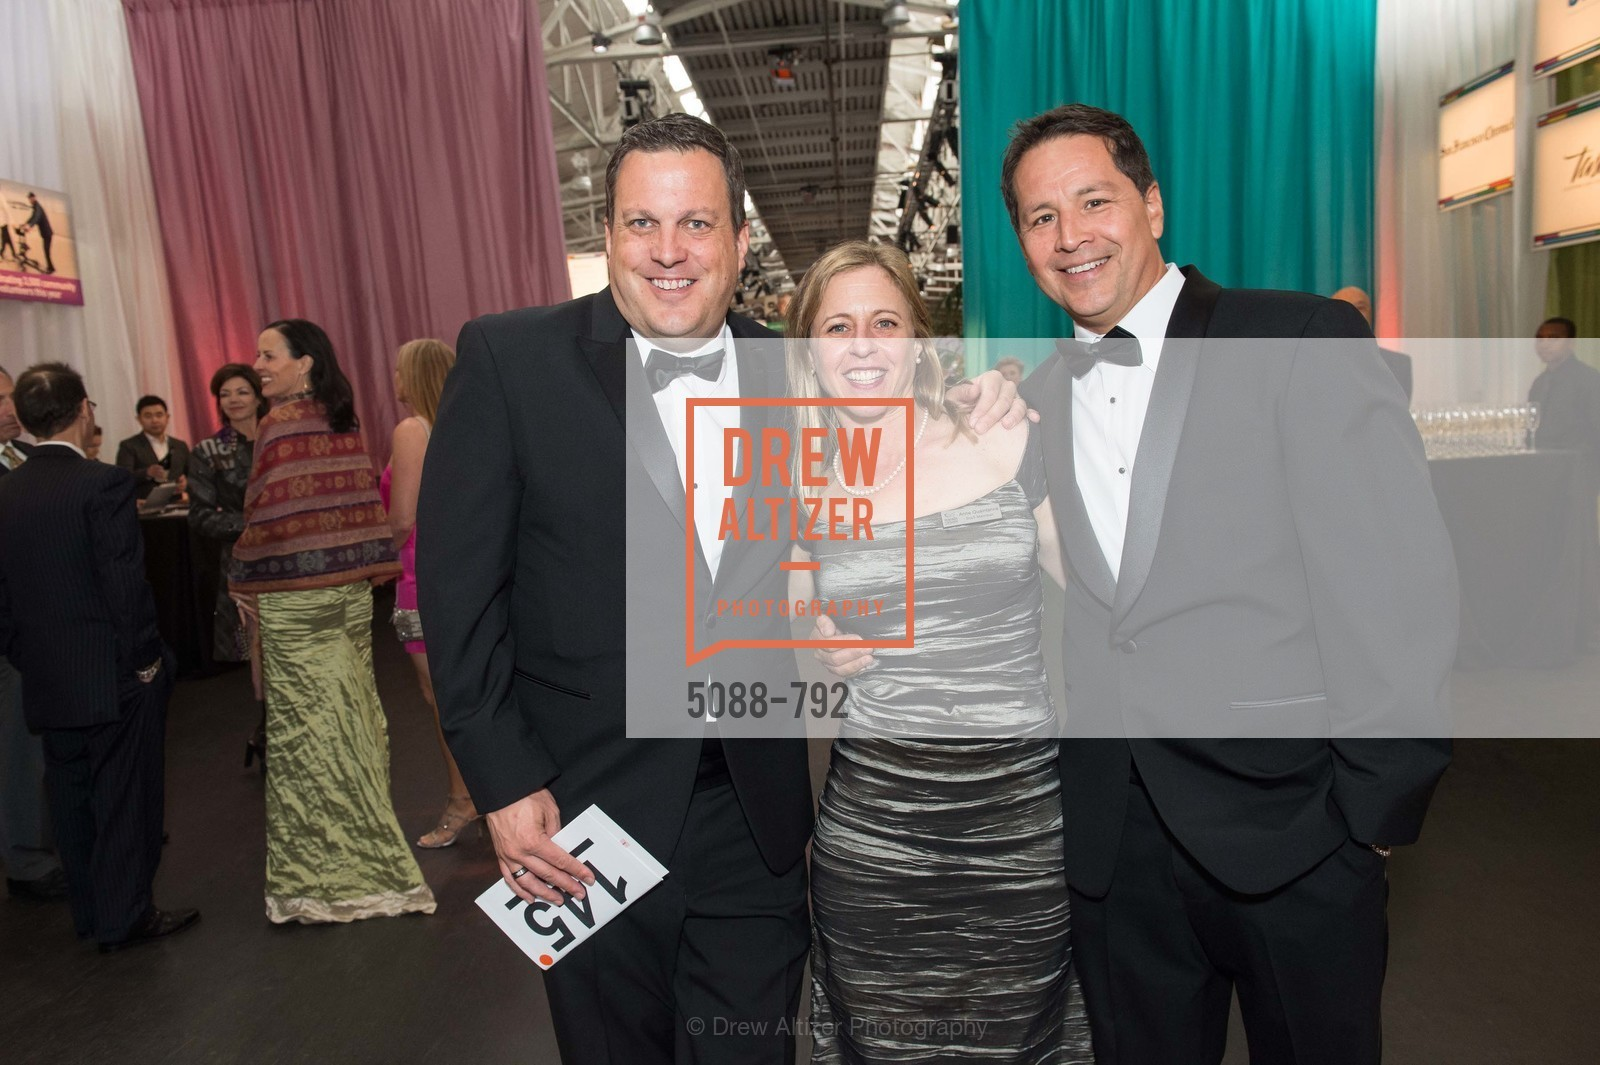 Jeff Peargin, Ann Quaintance, Hector Benavides, MEALS ON WHEELS OF SAN FRANCISCO'S 28th Annual Star Chefs and Vintners Gala, US, April 19th, 2015,Drew Altizer, Drew Altizer Photography, full-service agency, private events, San Francisco photographer, photographer california